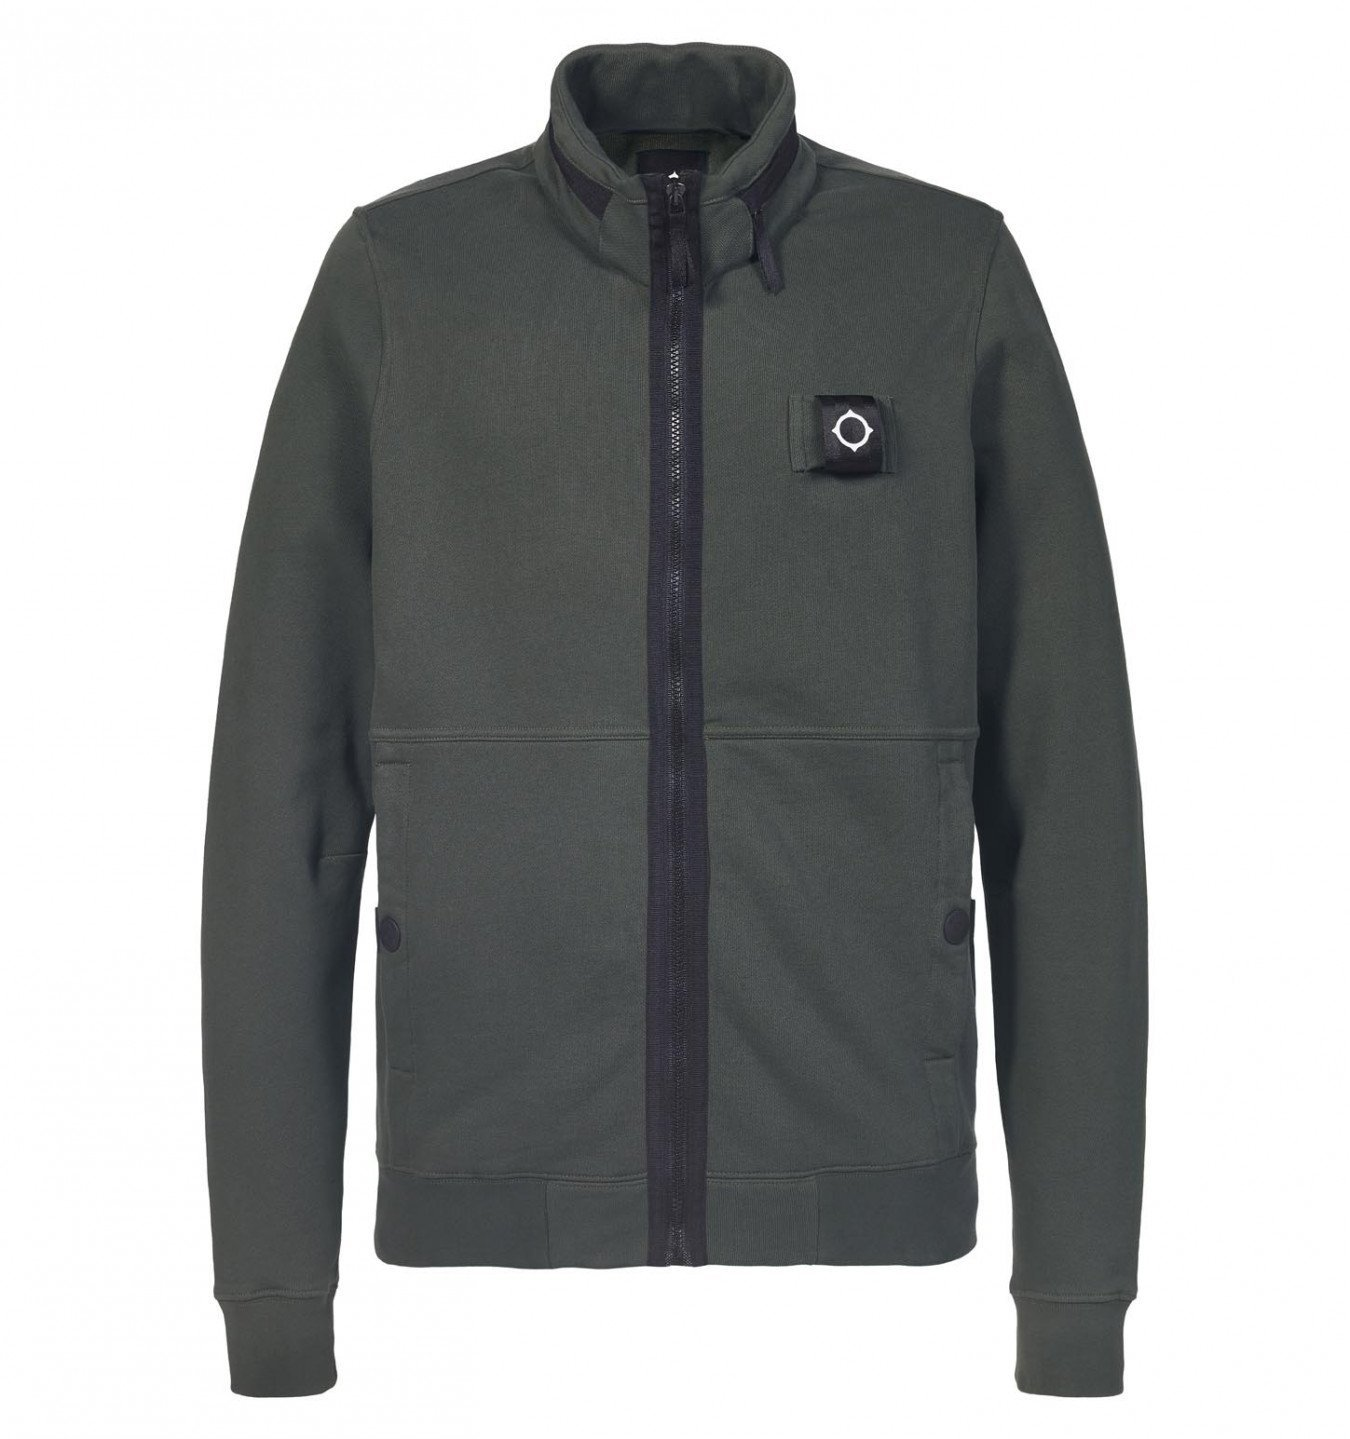 MA.Strum Training Jacket in Dark Khaki Green